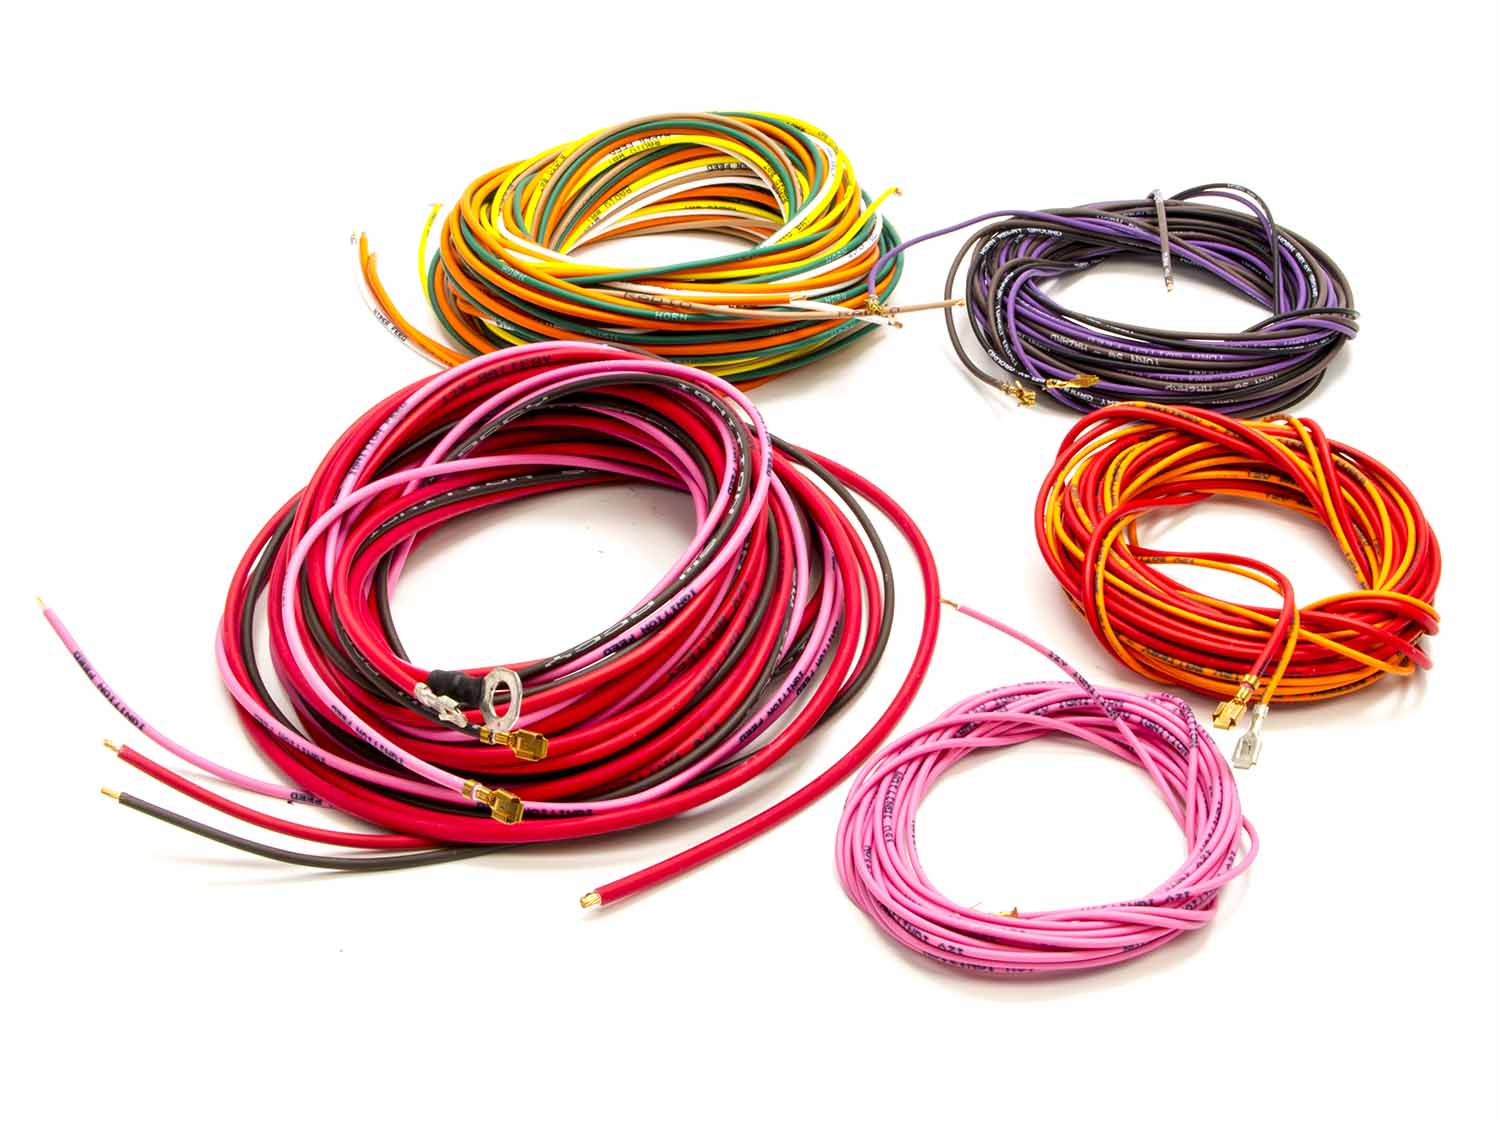 aaw 500839 1 search results etheridge race parts Wire Harness Assembly at alyssarenee.co